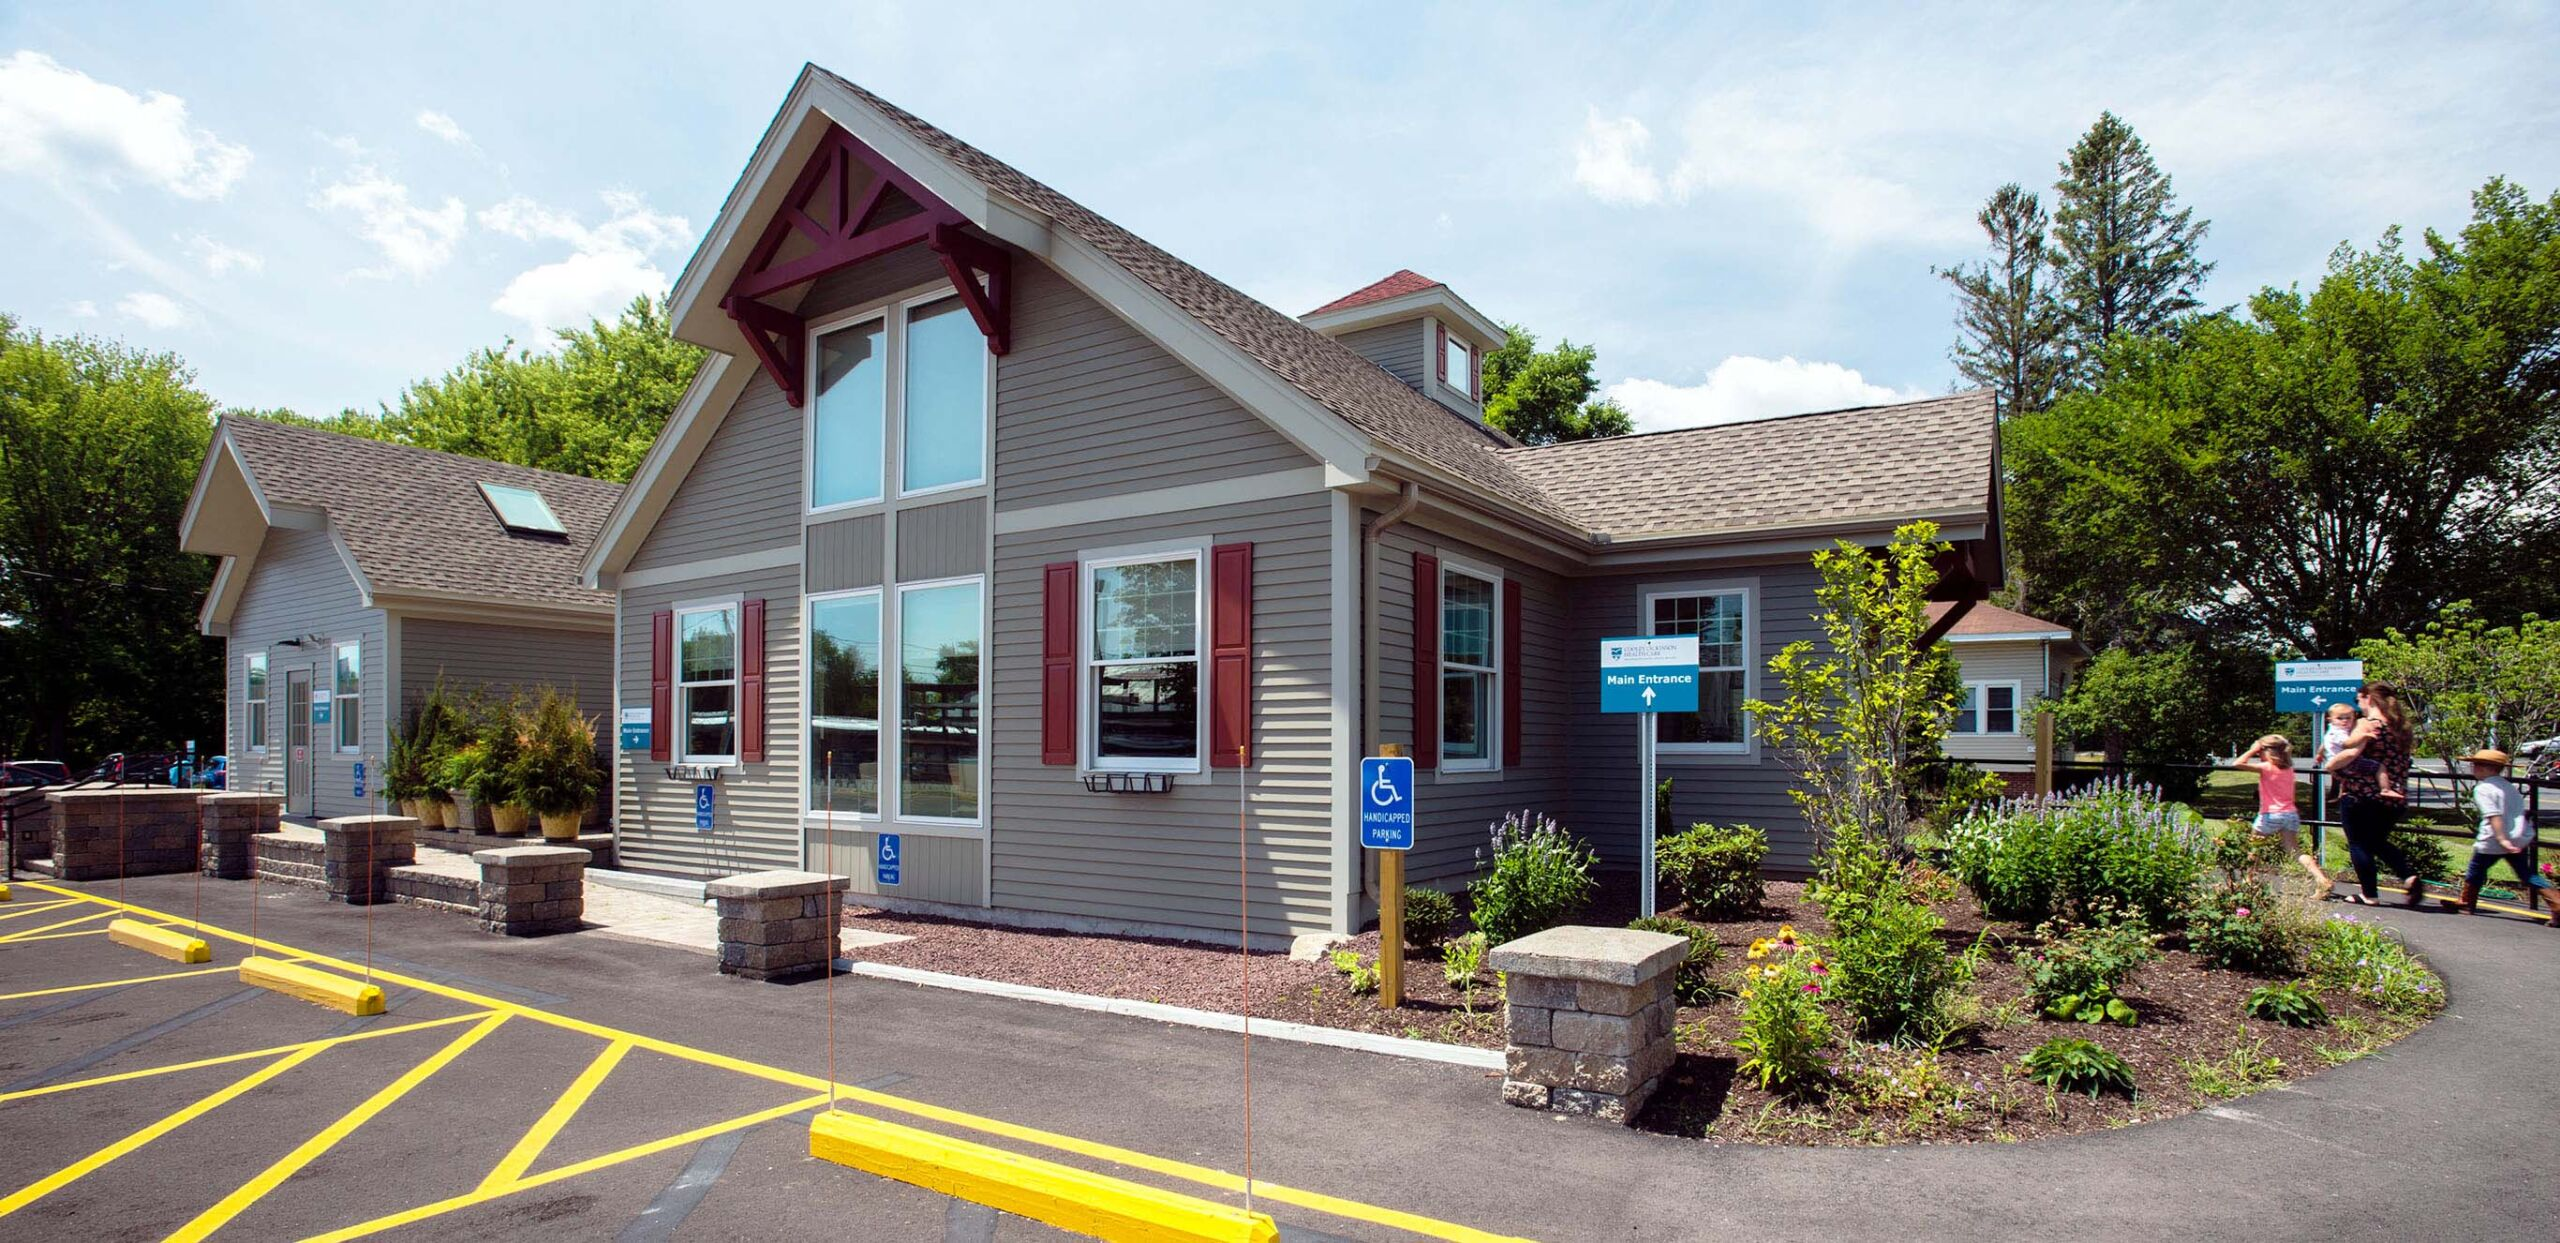 Entrance to South Deerfield Family Medicine and Sugarloaf Pediatrics, 29 Elm Street, South Deerfield, MA 01373.